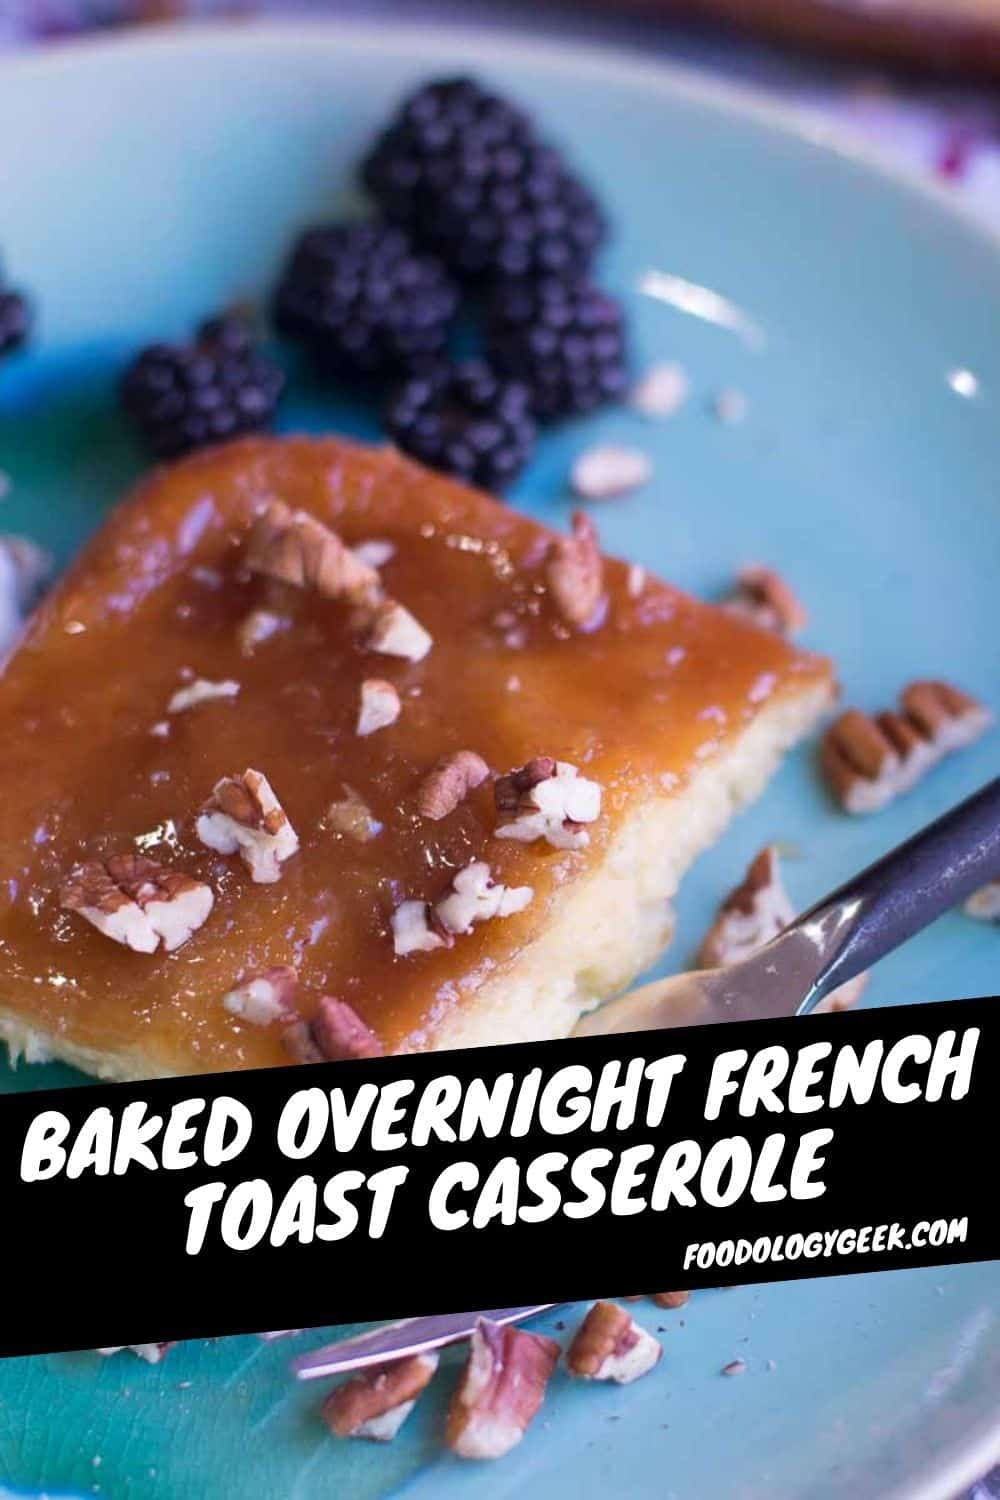 Creme Brûlée French Toast Casserole — when you want a breakfast that looks ultra-fancy but need a recipe that's super easy!